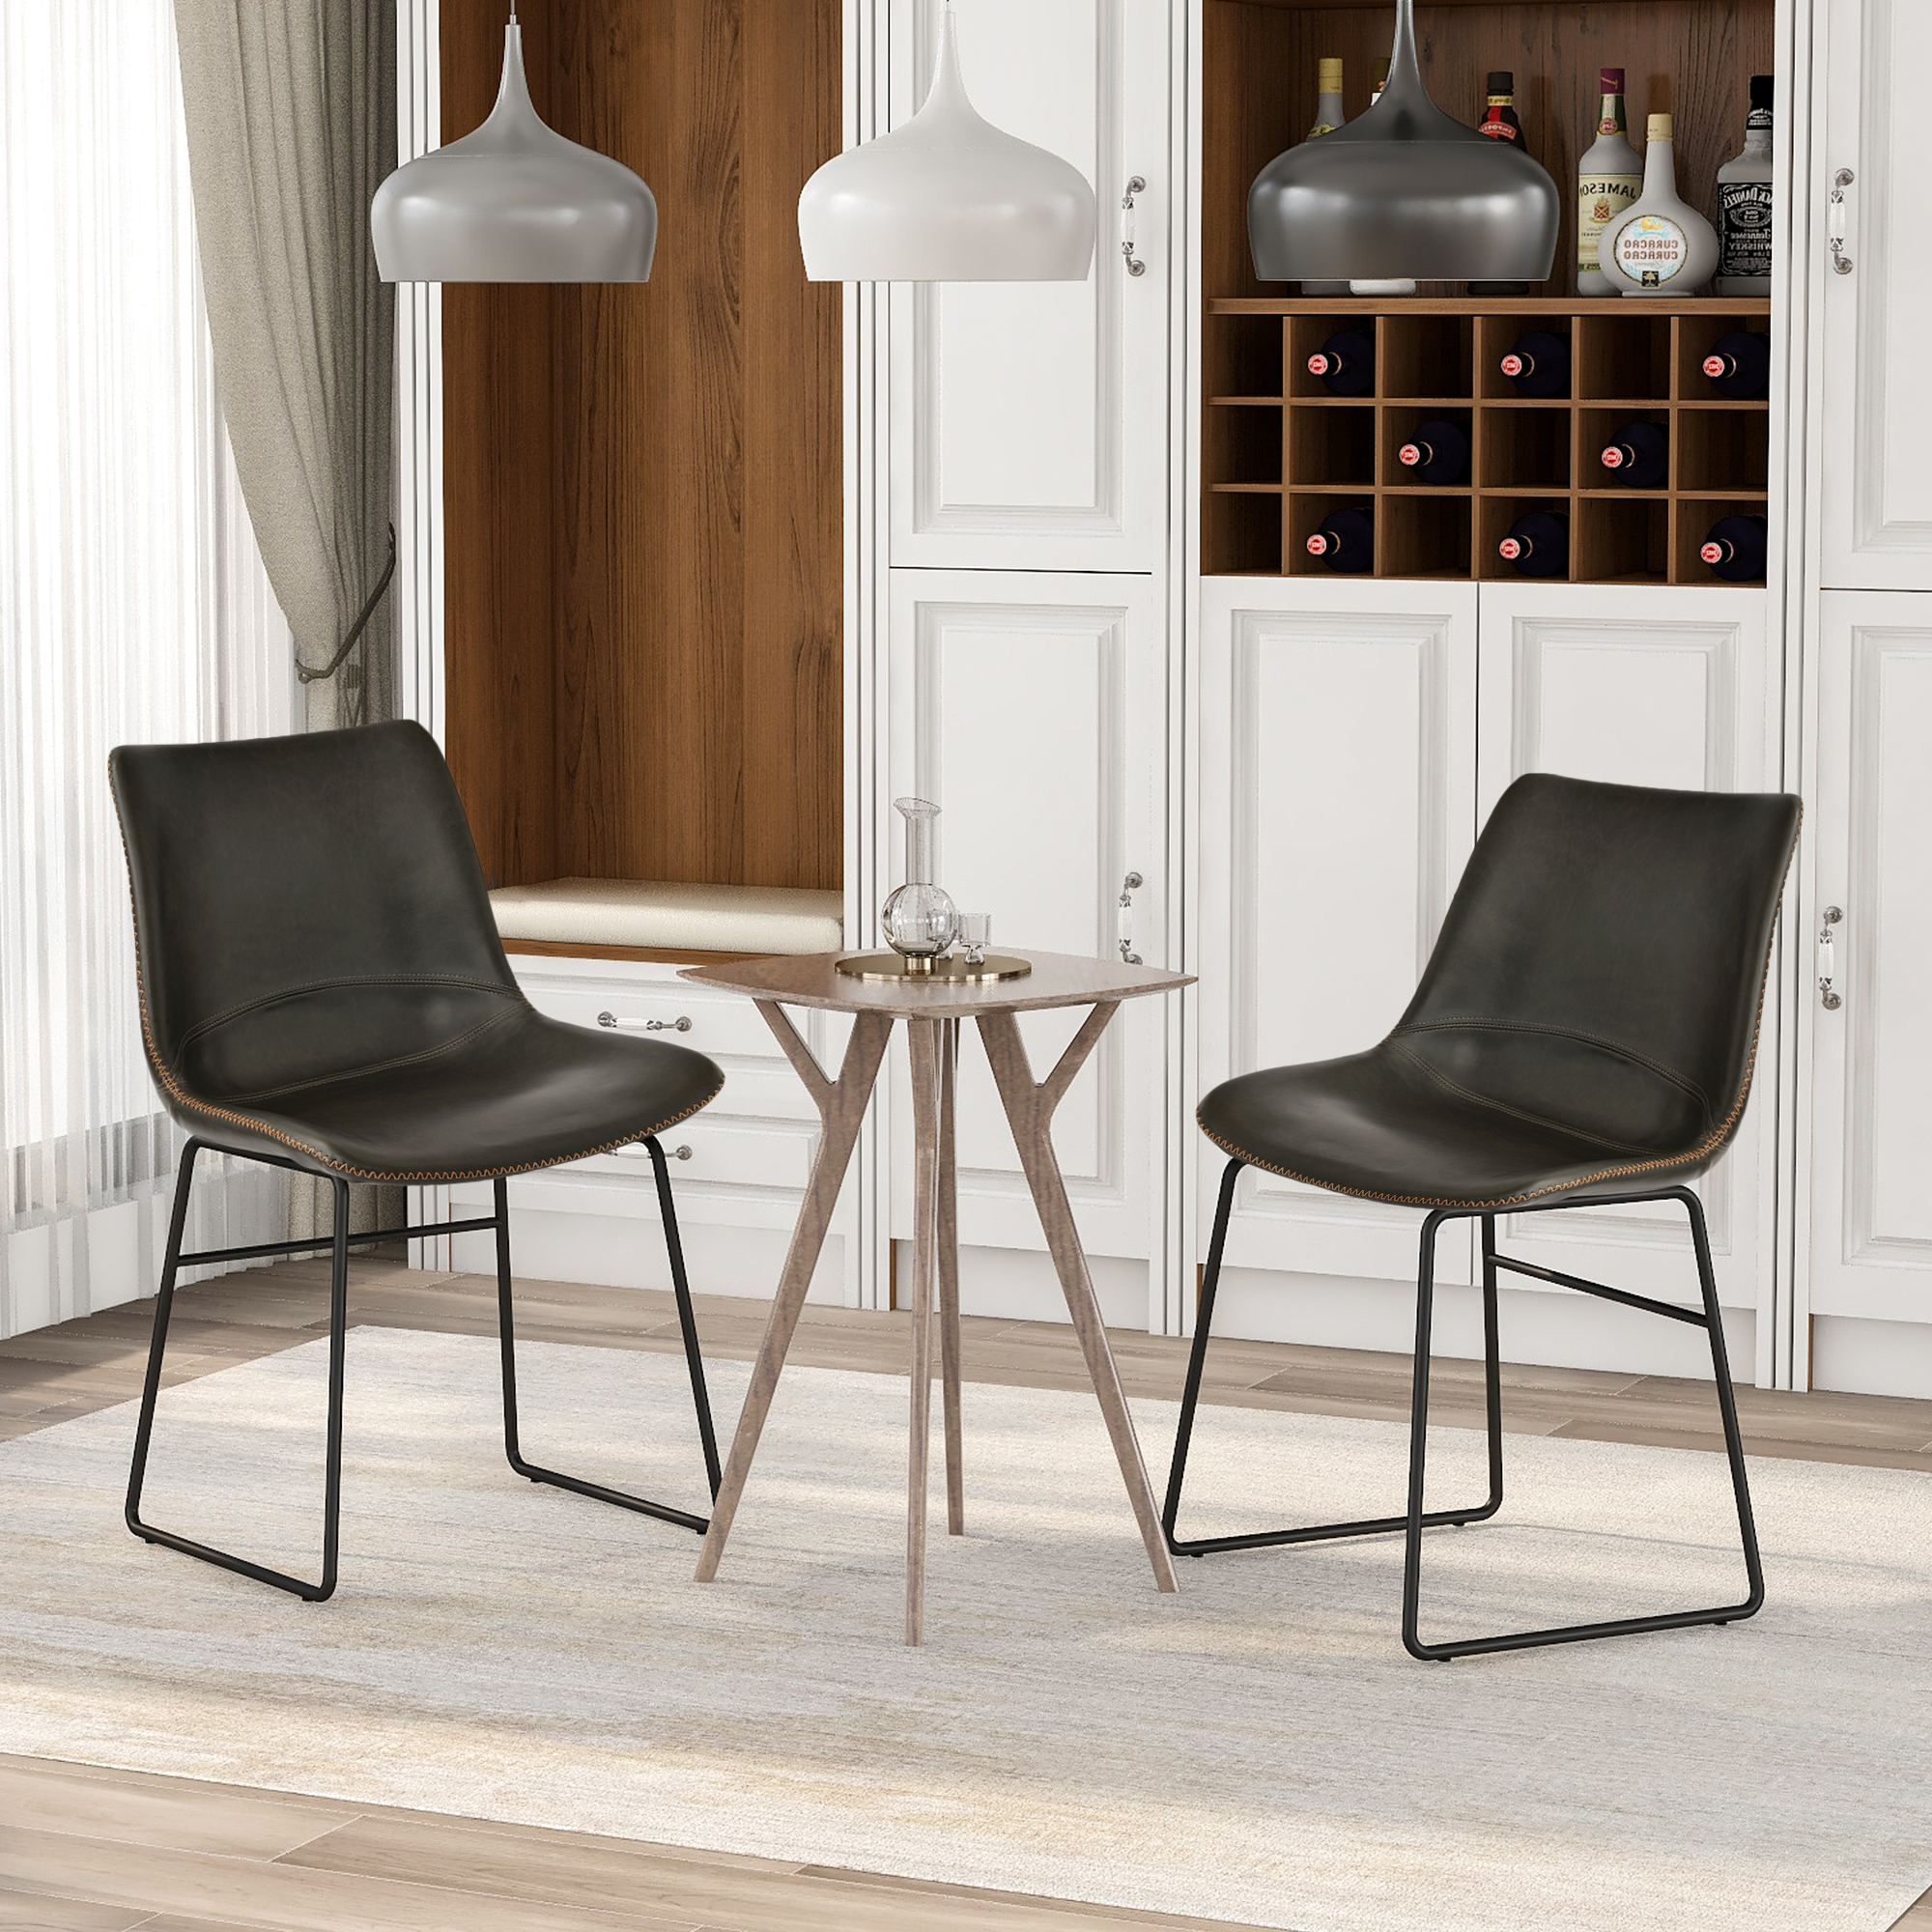 Vintage Armless Leatherier Dining Stools Indoor Dining Chairs Set Of 2